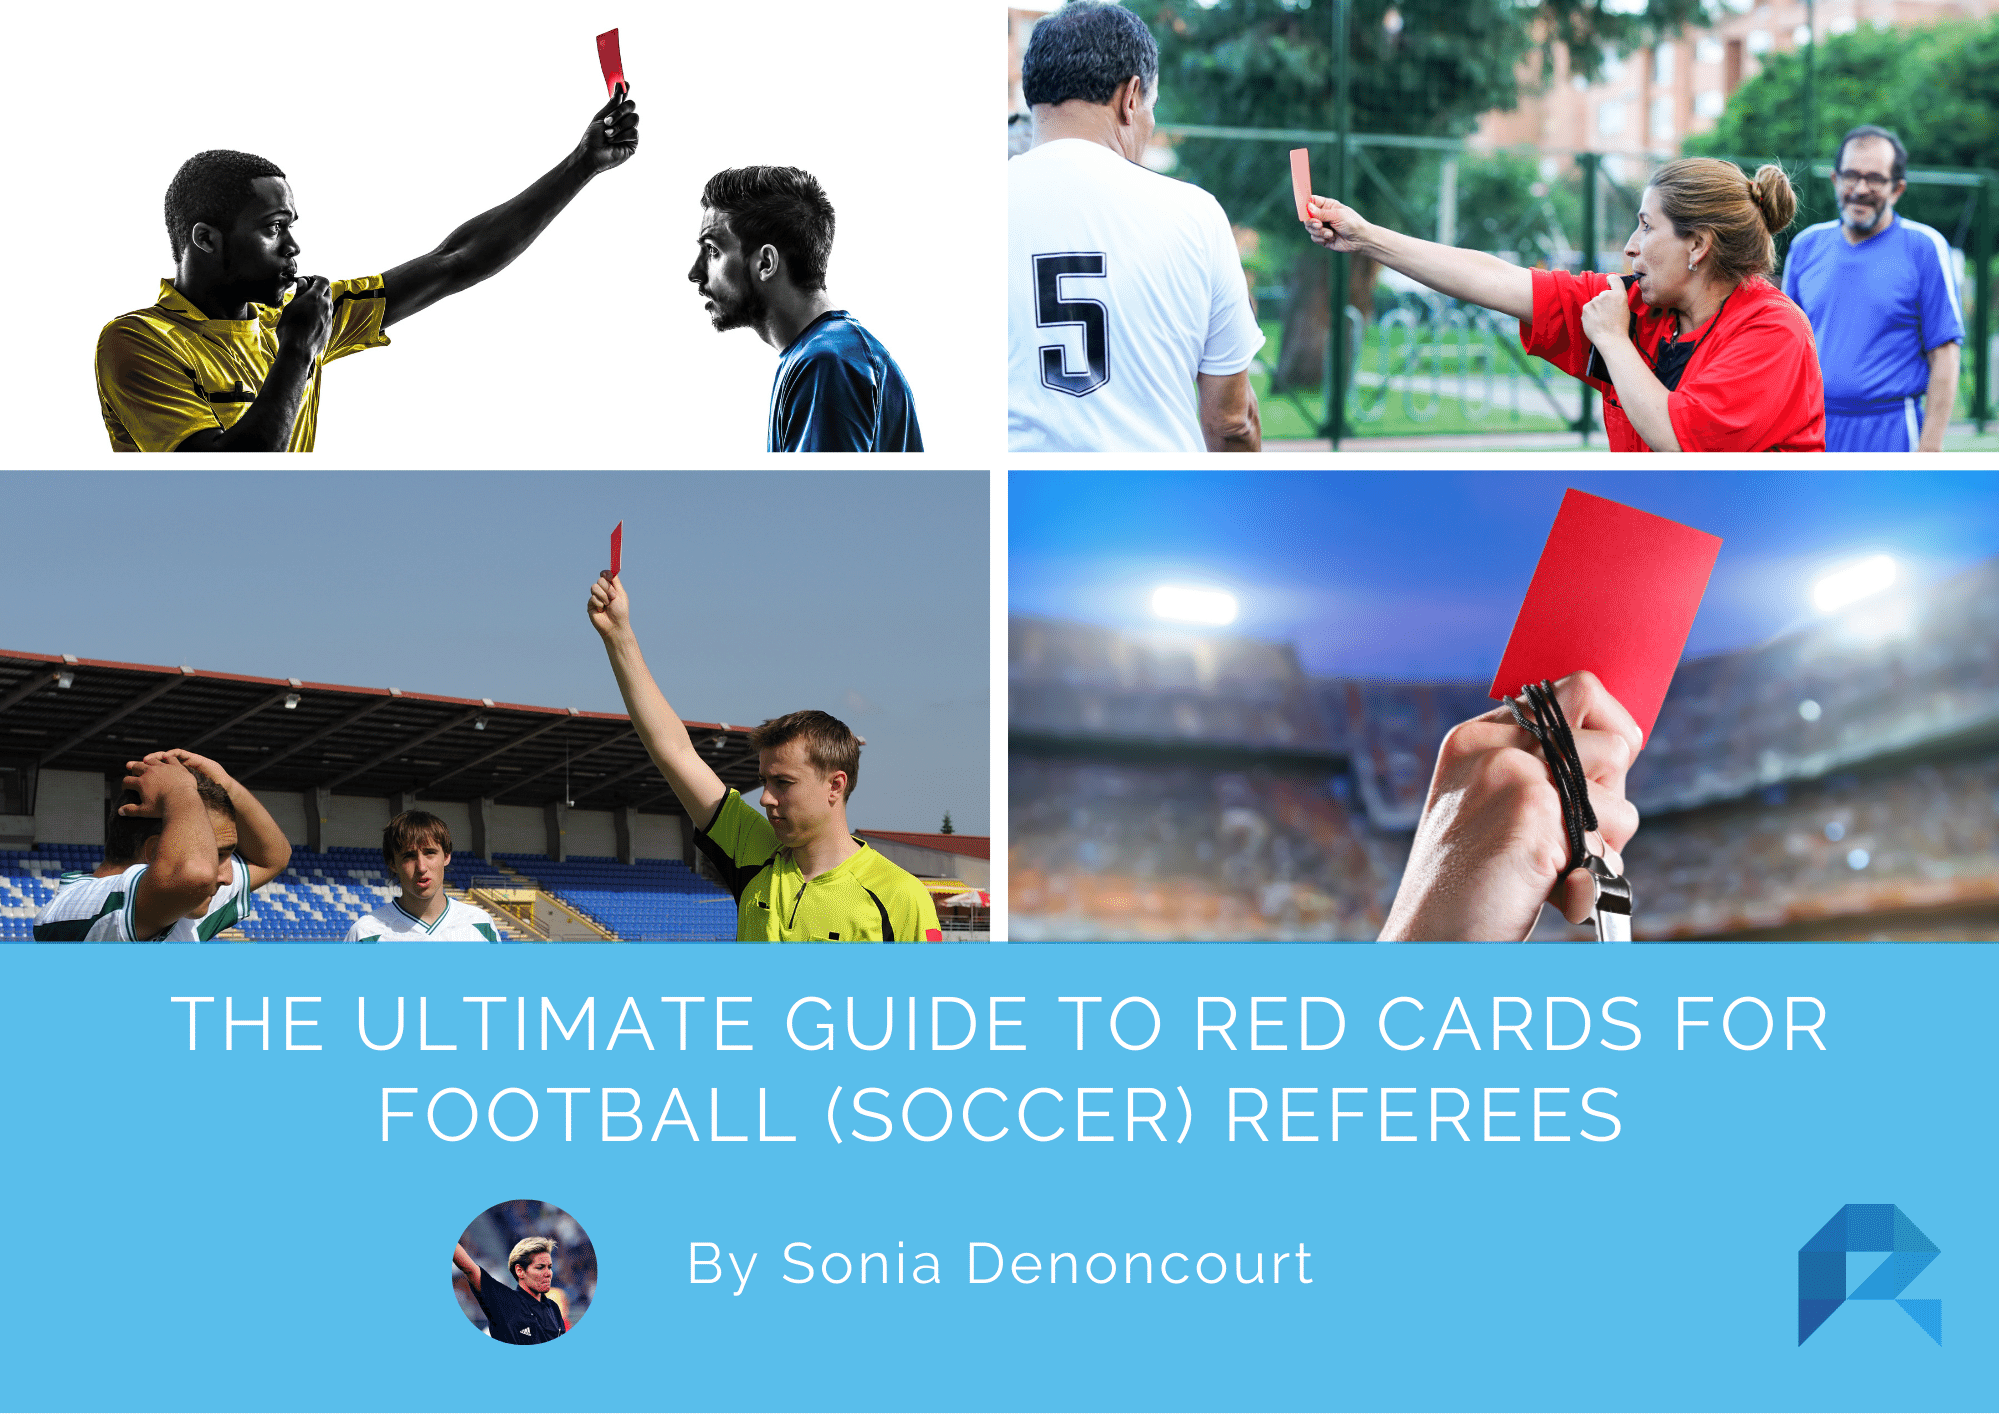 The Ultimate Guide to Red Cards for Football (Soccer) Referees